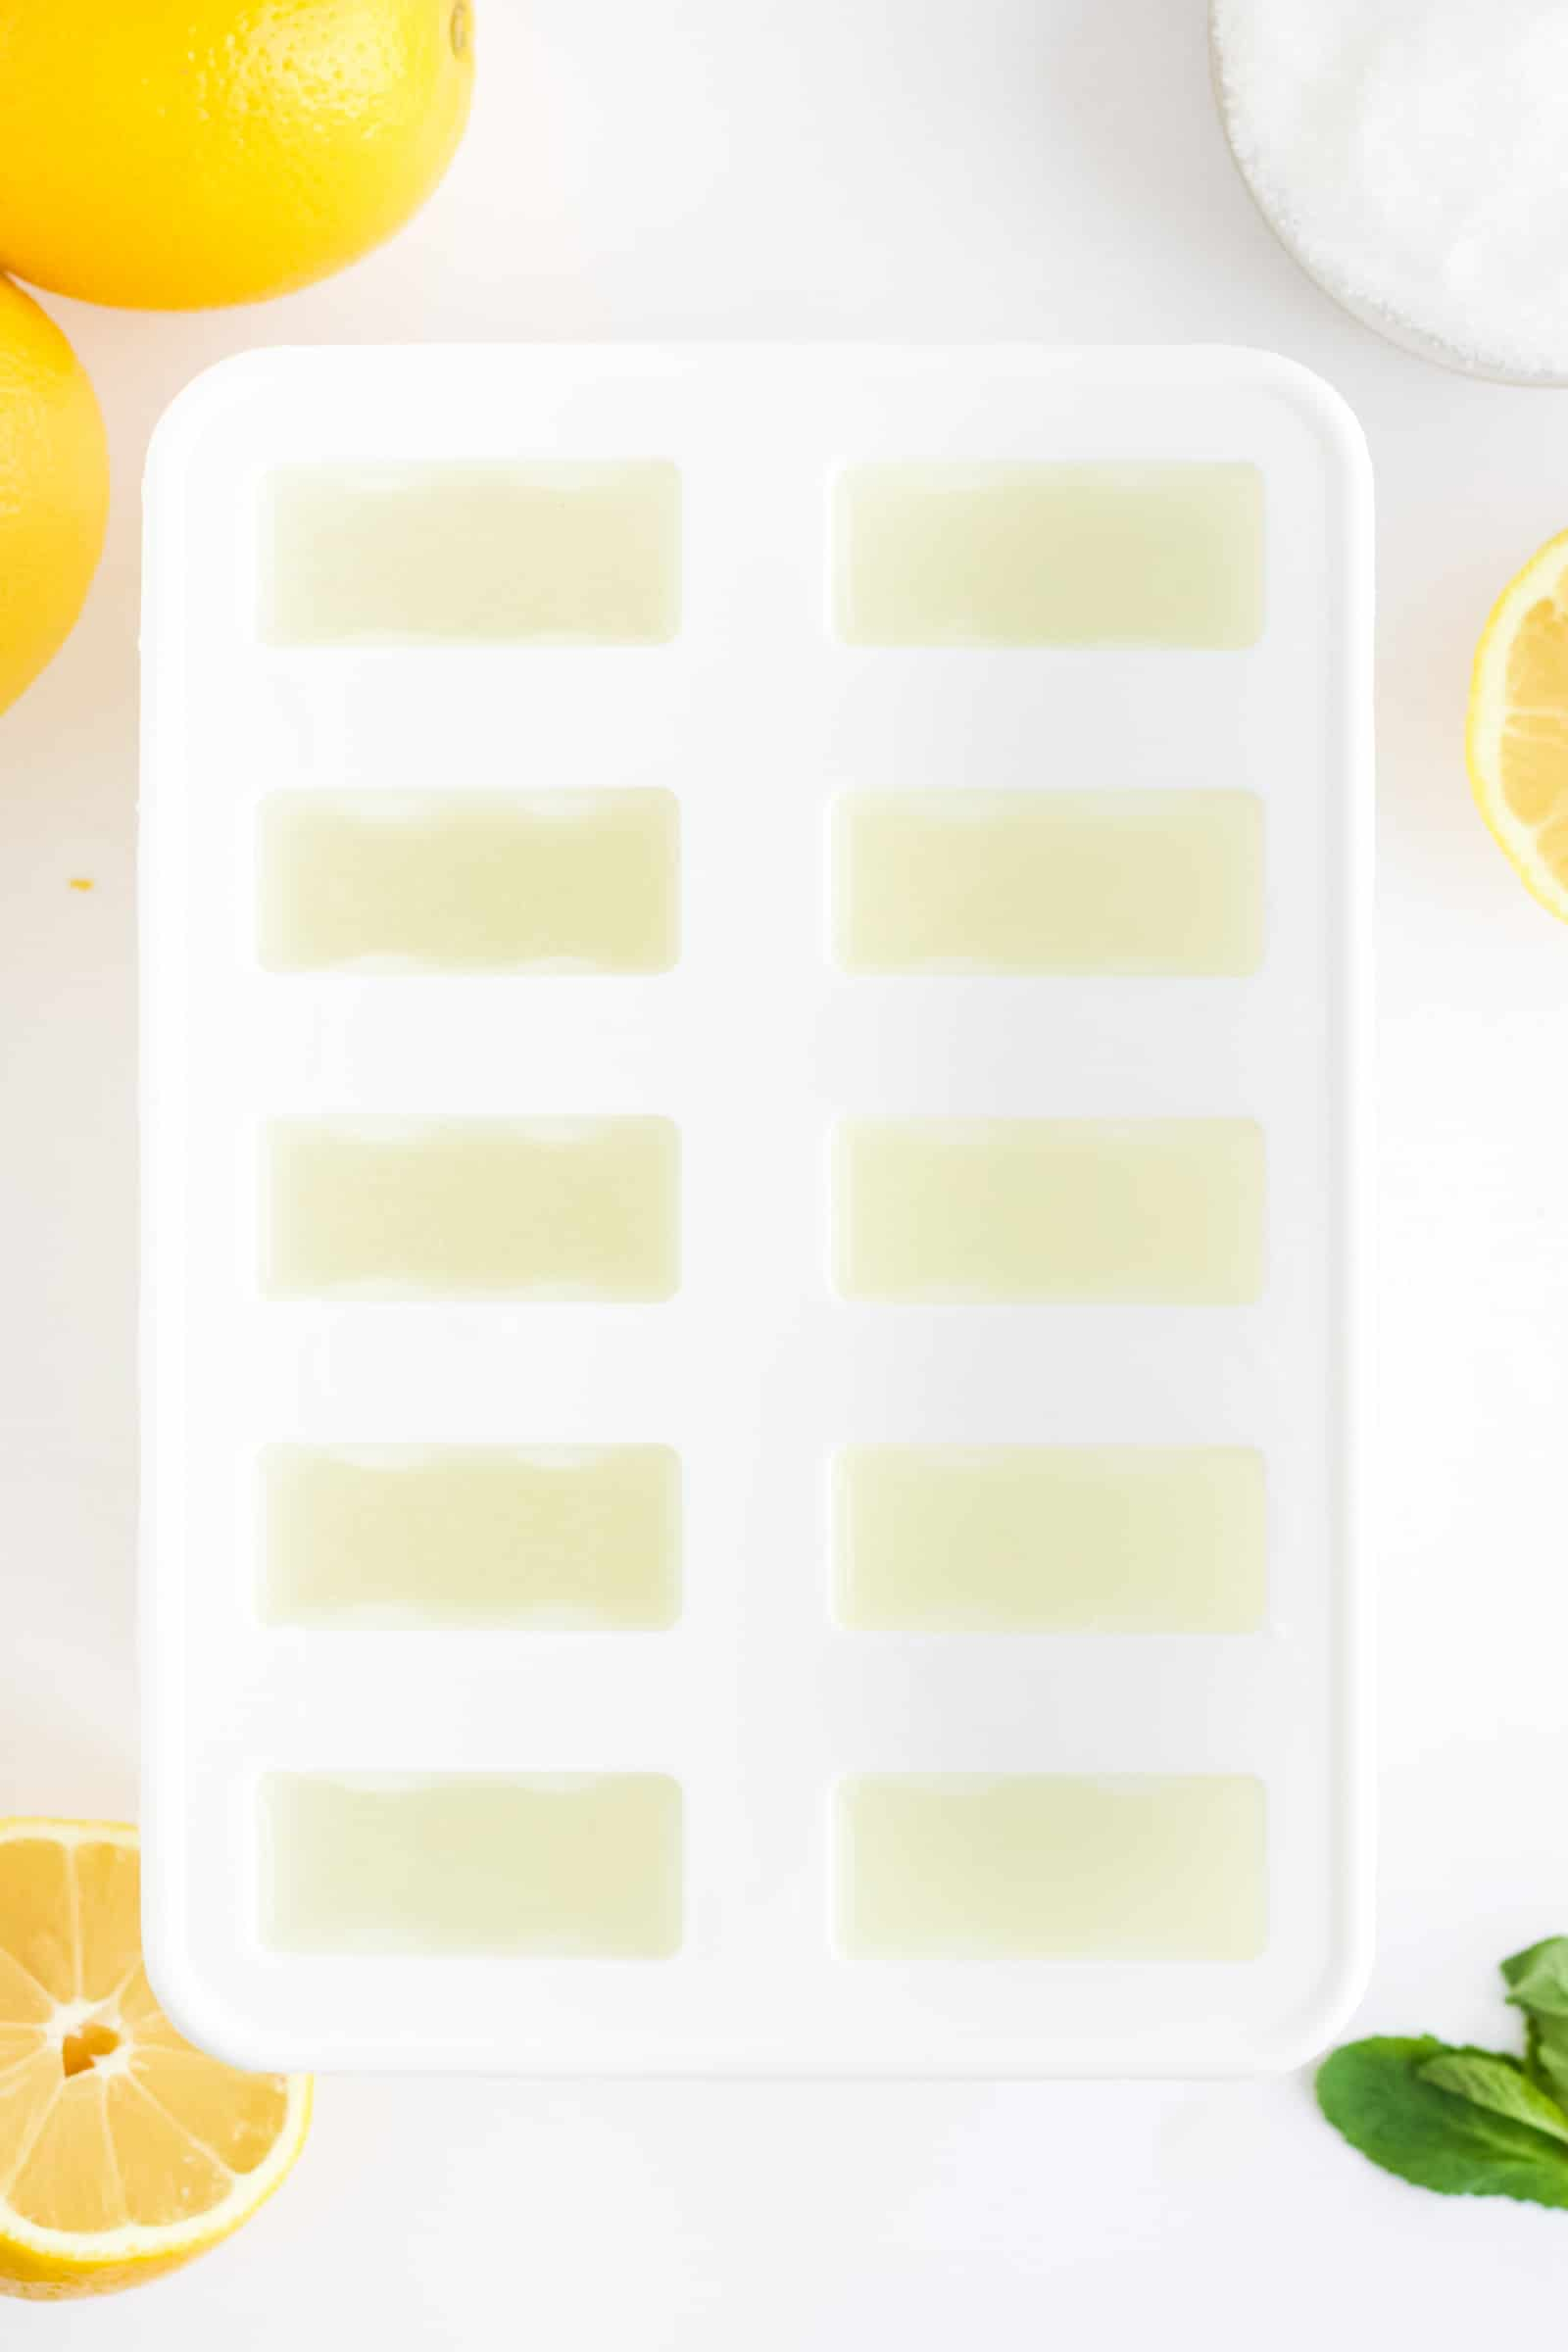 popsicle mold filled with lemonade and lemons and sugar in the background